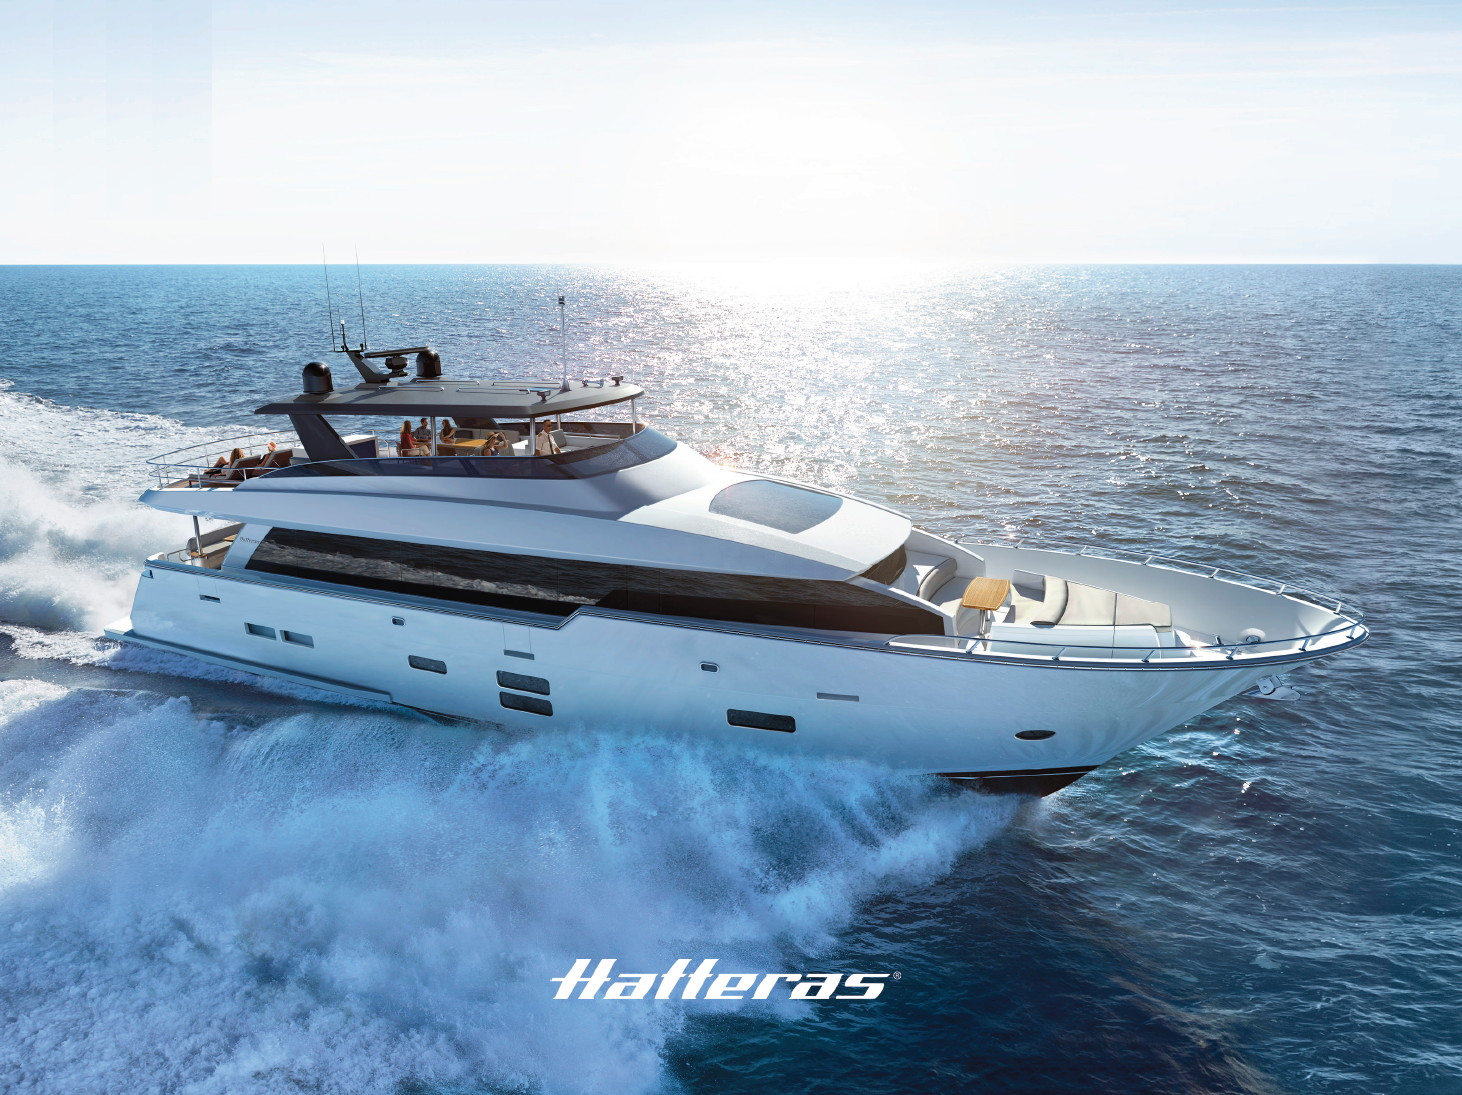 Luxury yacht for Sale | 90 Motor Yacht by Hatteras Yachts